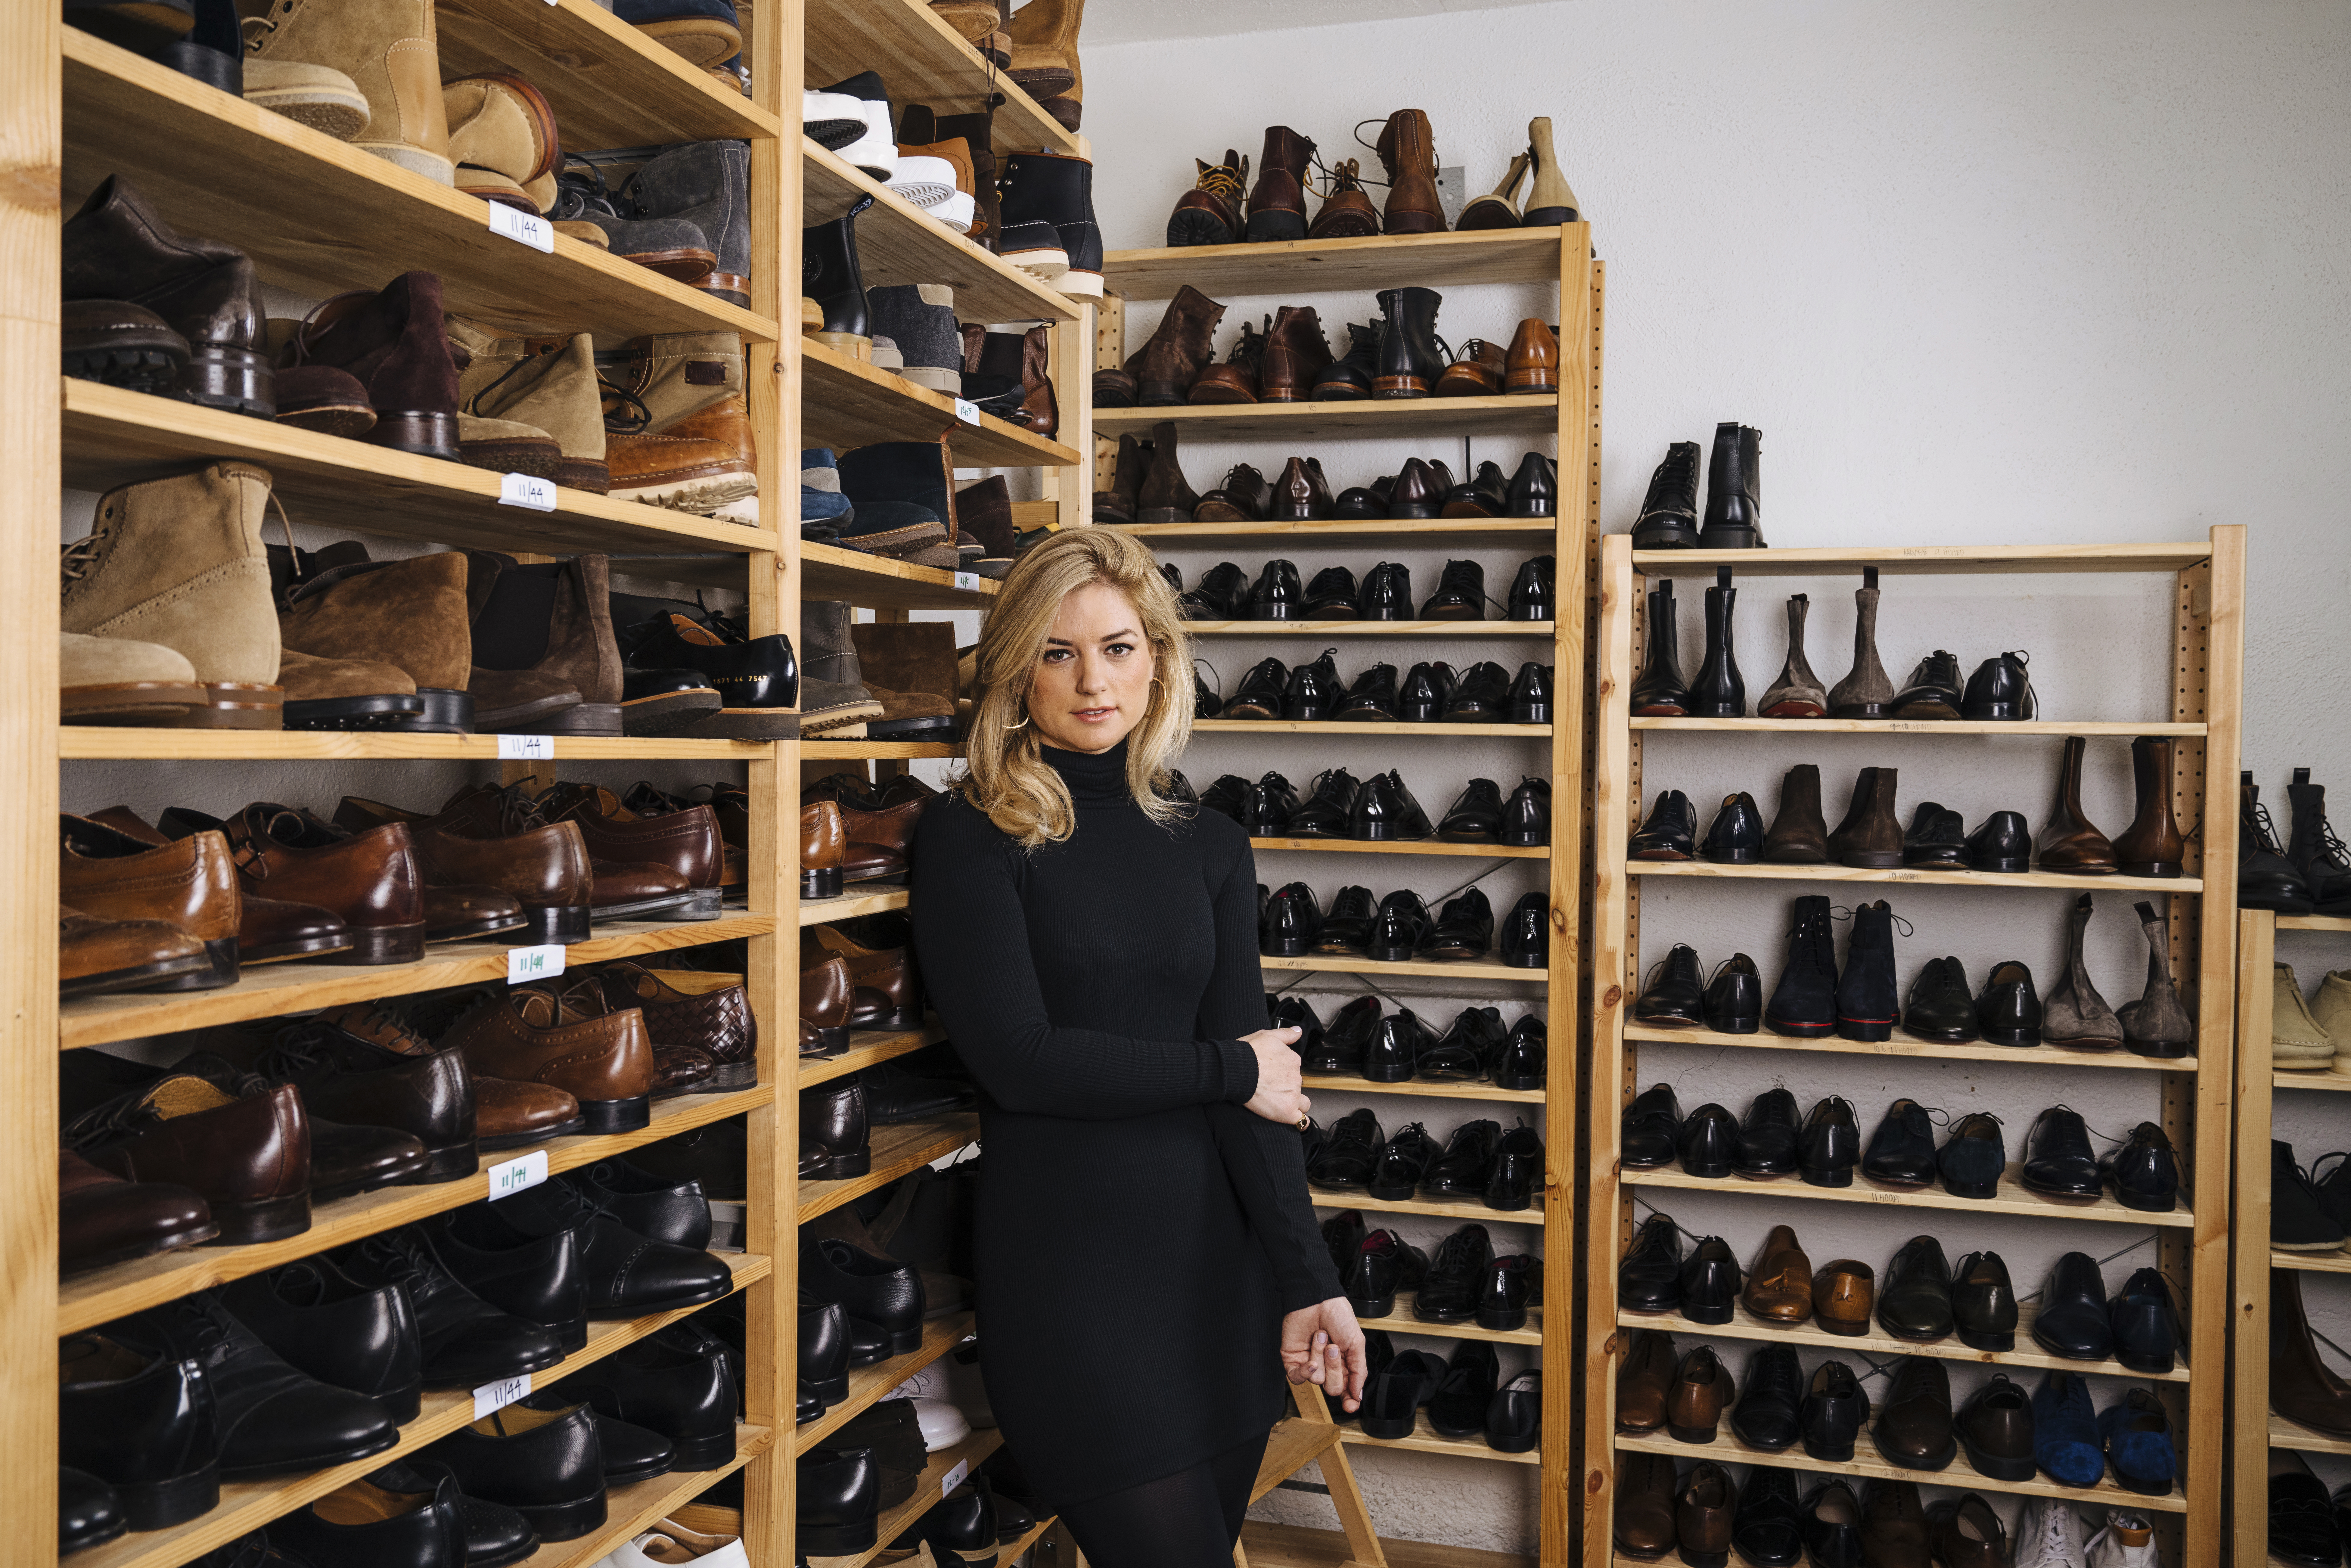 Fashion stylist Ilaria Urbinati, pictured at her studio in Los Angeles, has transformed how men present themselves on the red carpet. MUST CREDIT: Photo for The Washington Post by Brinson+Banks